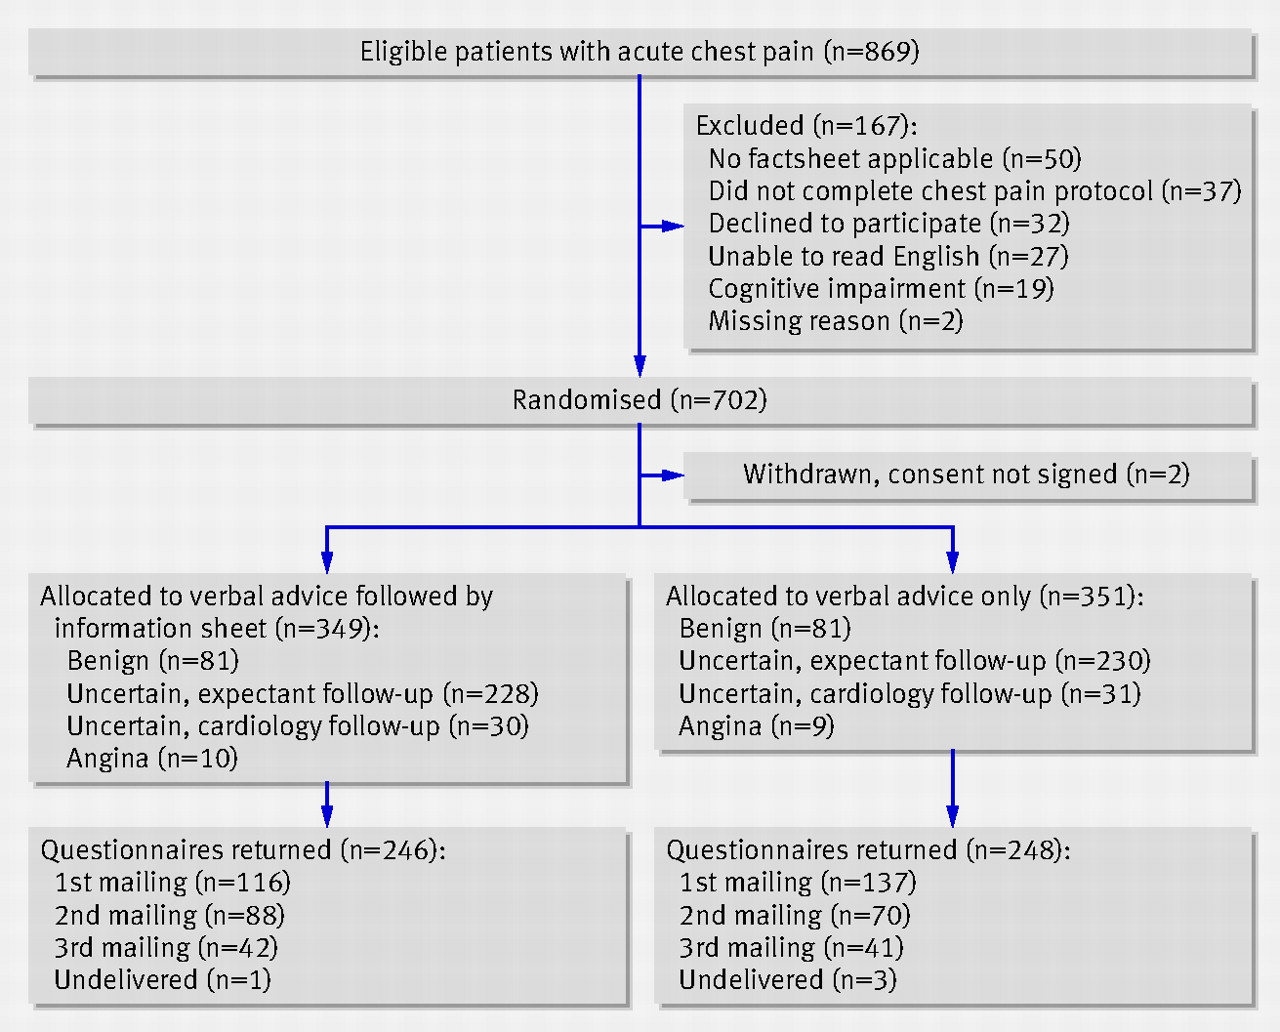 Patient flow through trial